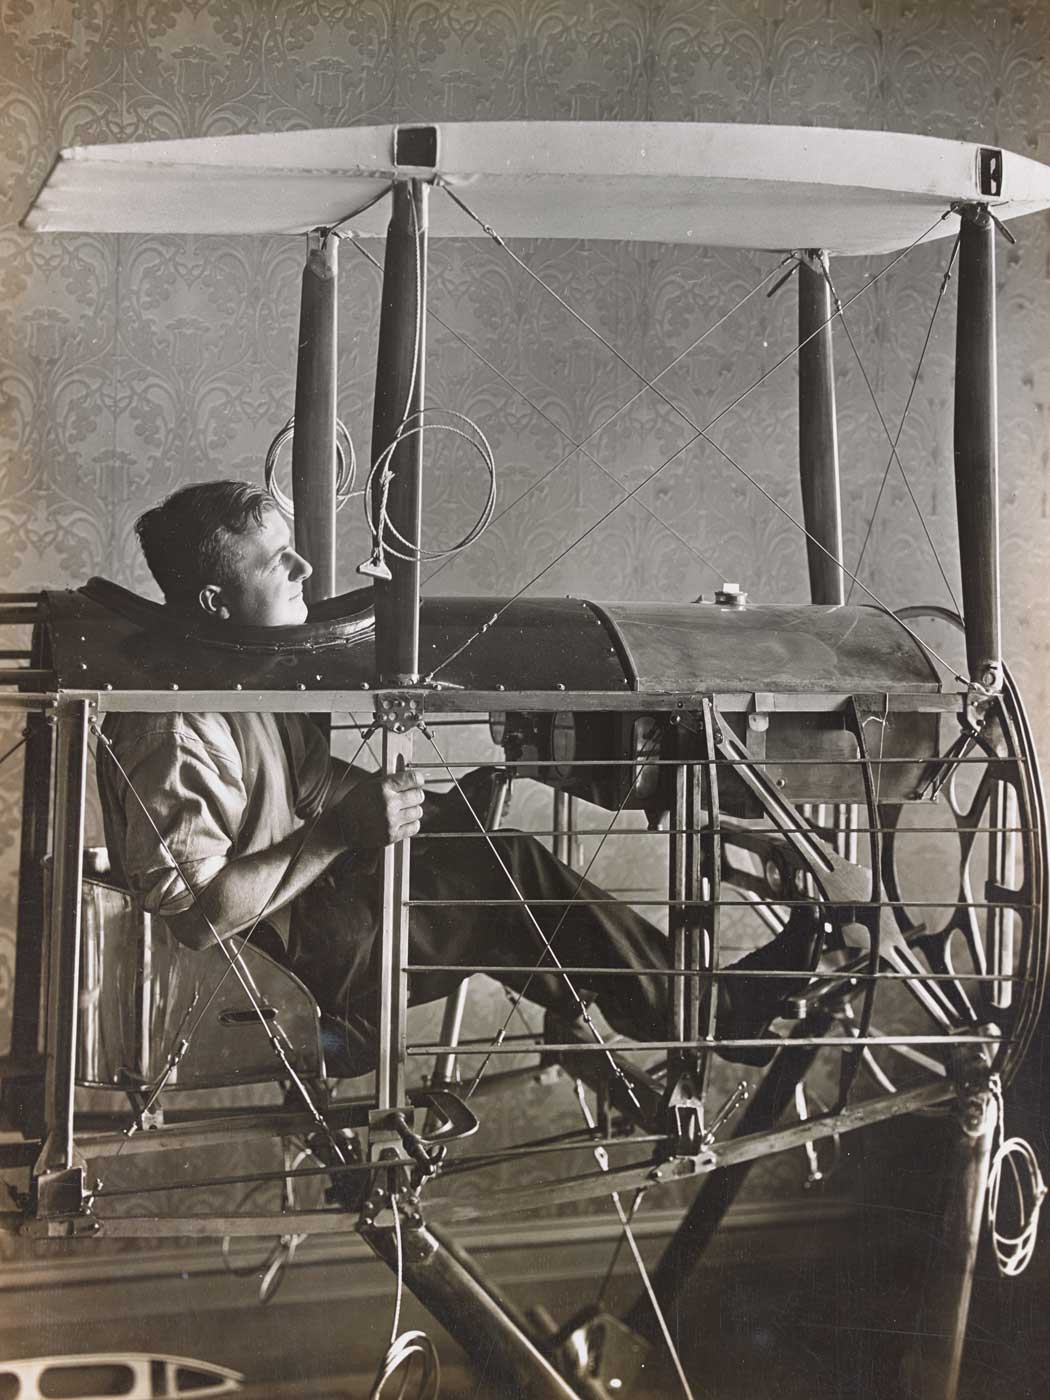 A man is sitting in a half-constructed aeroplane inside a room. - click to view larger image